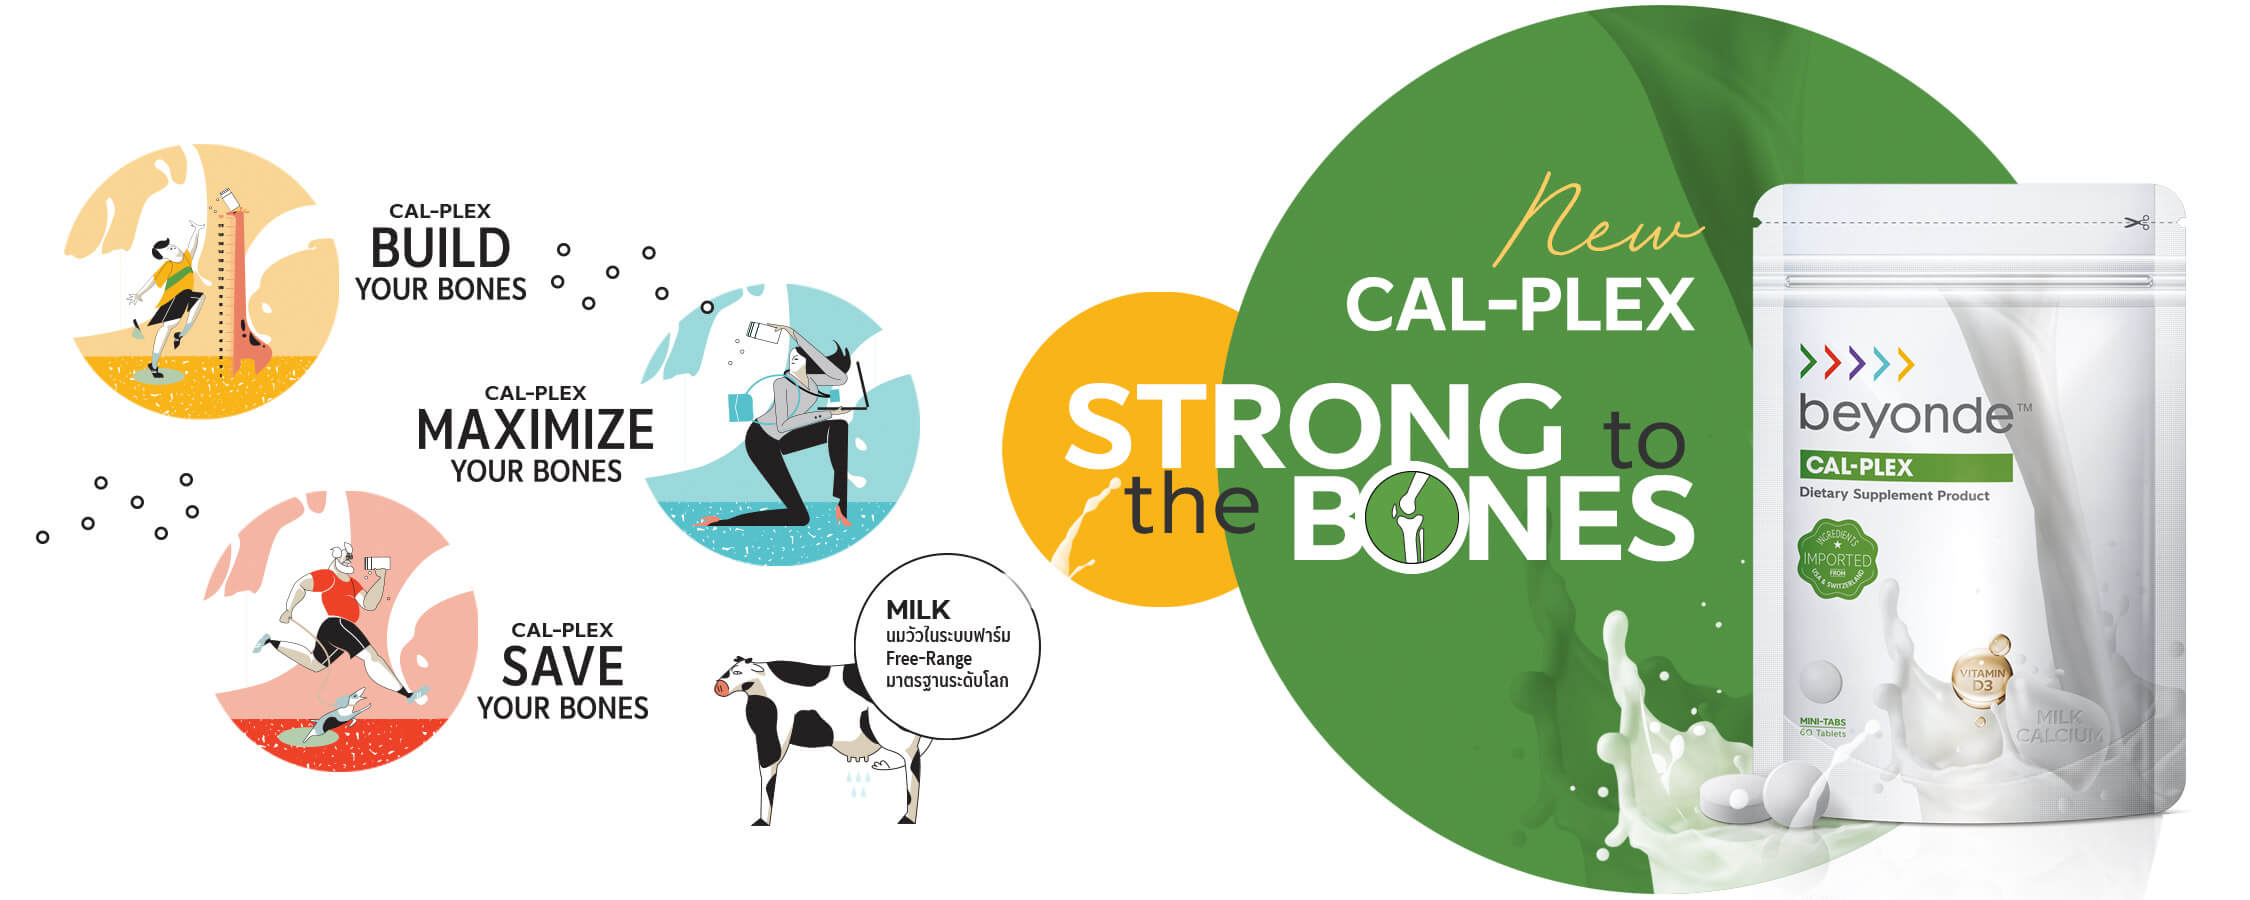 For stronger bones at every age